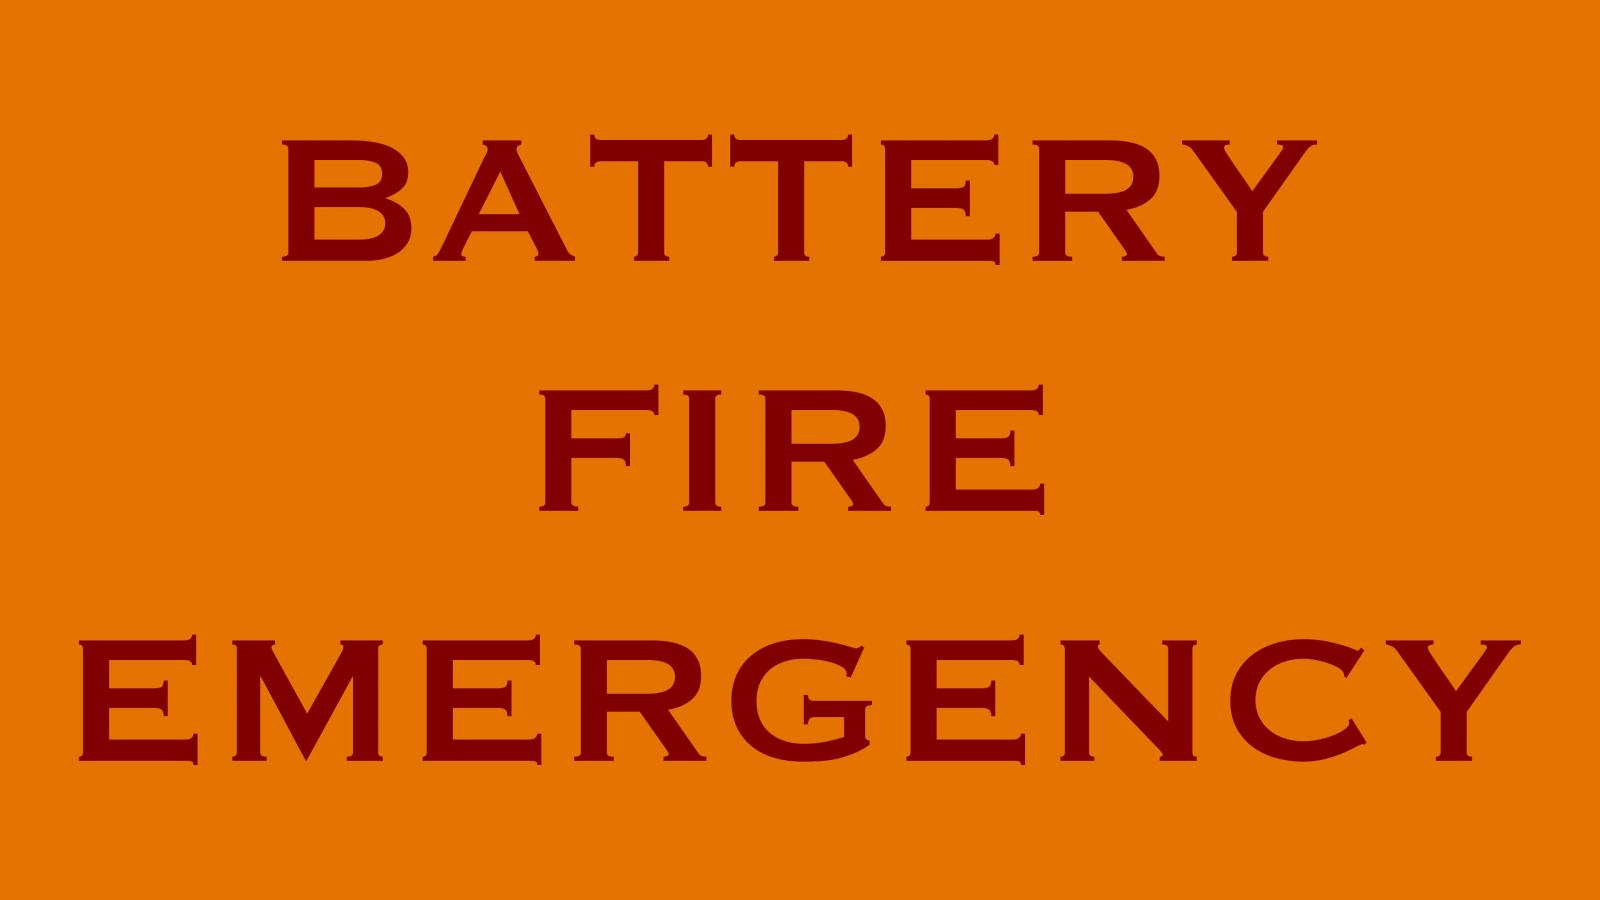 BATTERY FIRE EMERGENCY